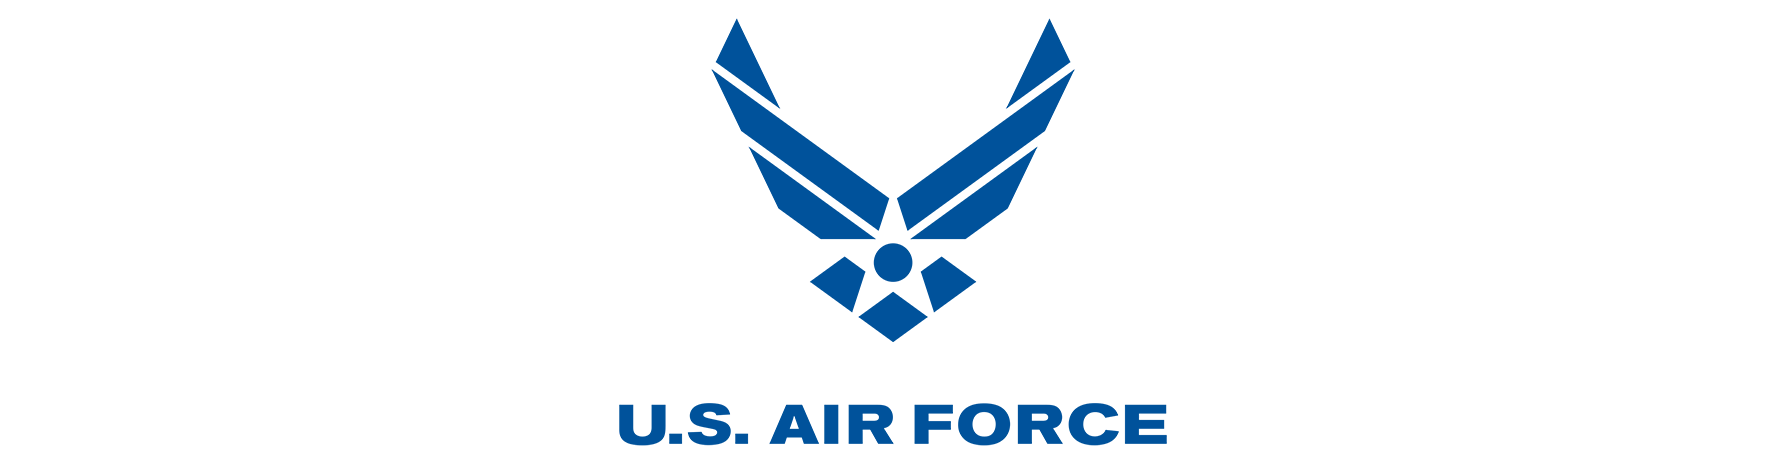 About_airforce